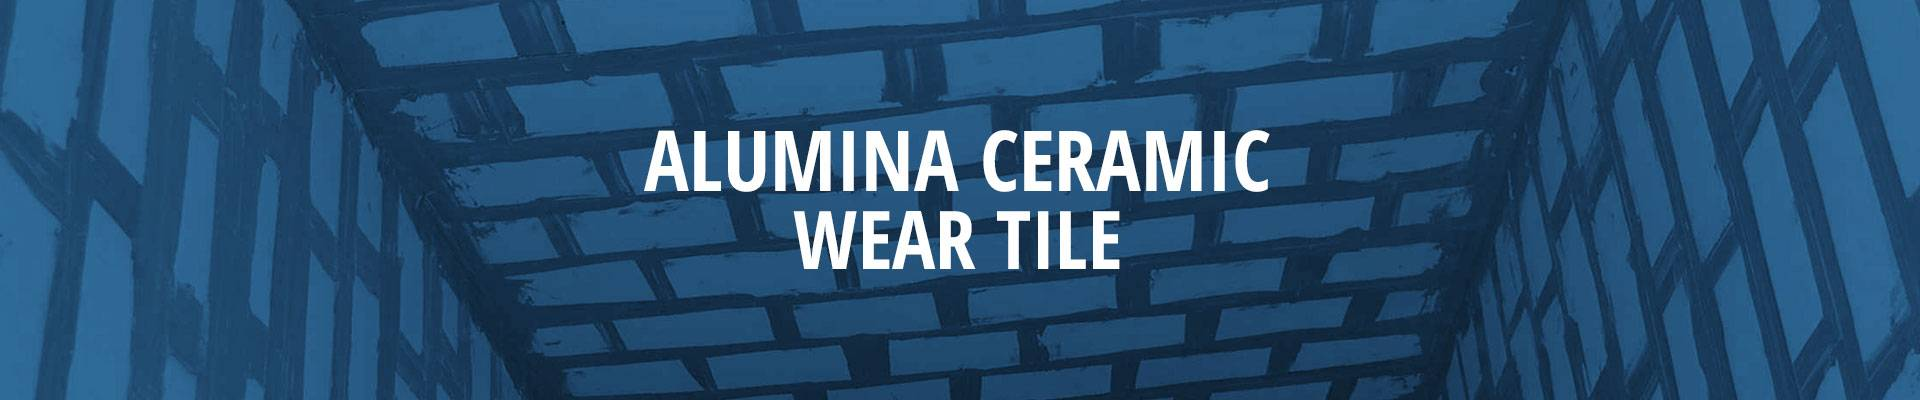 Alumina ceramic wear tile